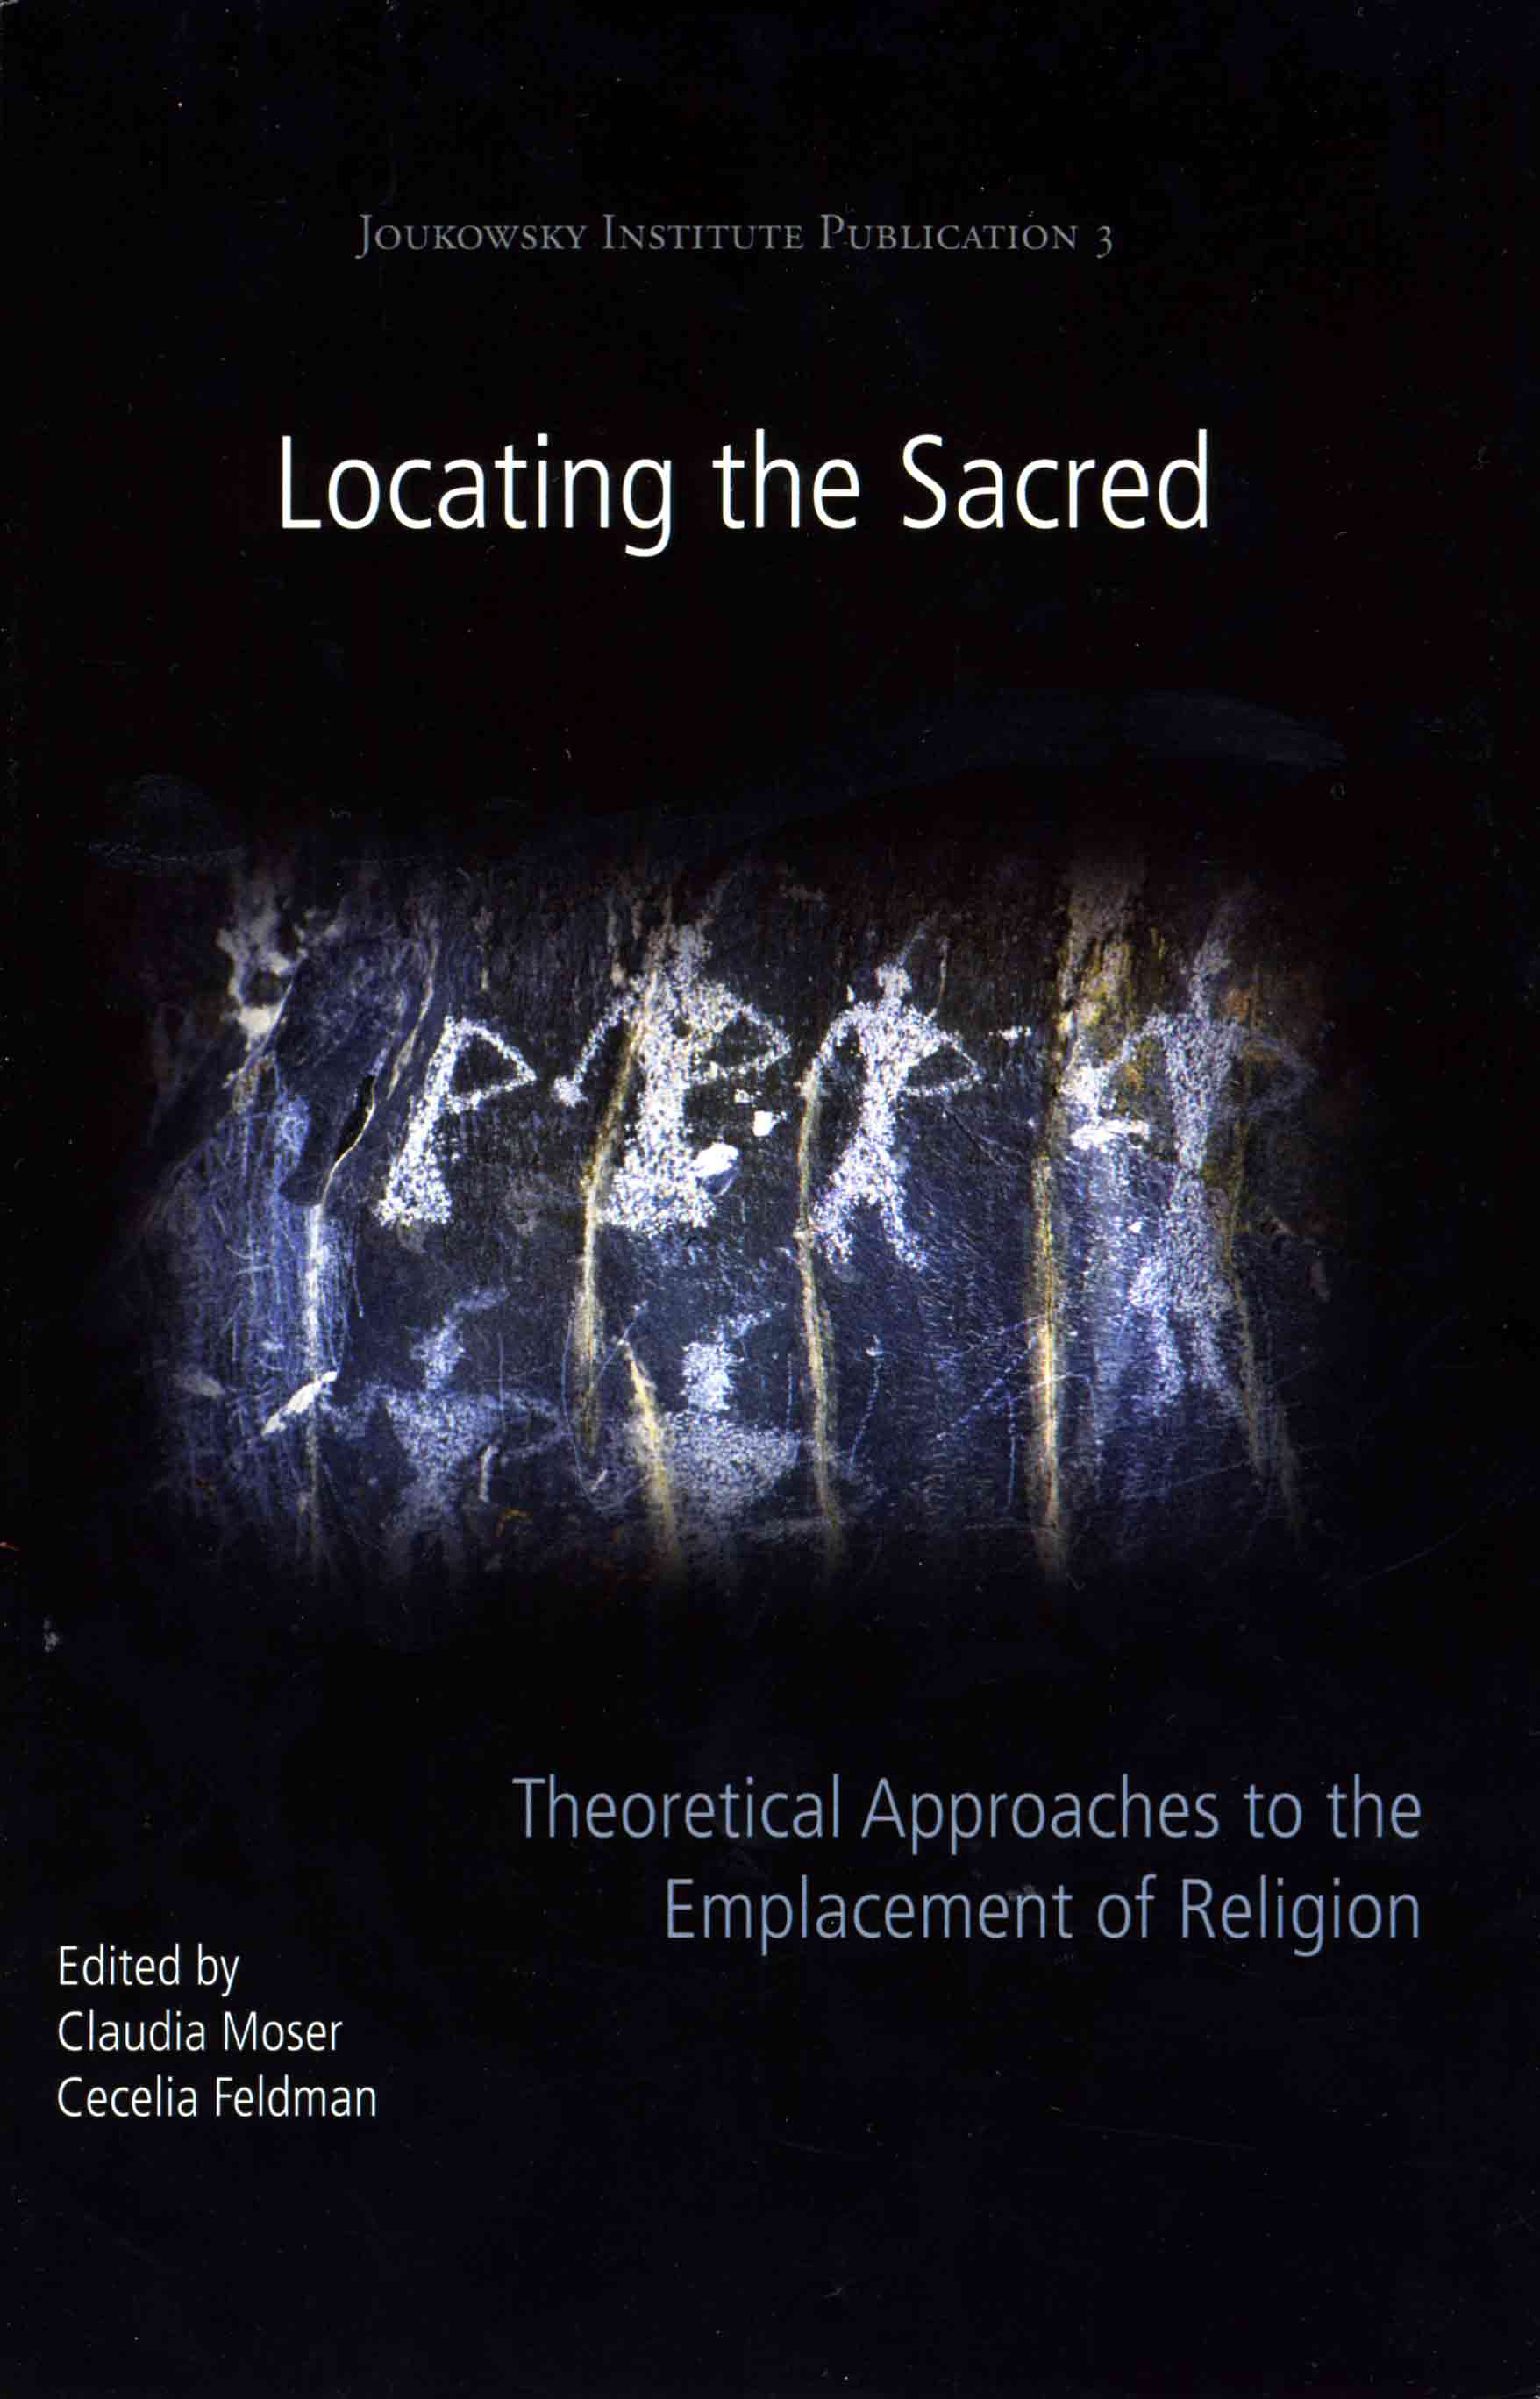 Claudia Moser and Cecelia Feldman, eds. Locating the Sacred: Theoretical Approaches to the Emplacement of Religion. Oakville: Oxbow Books, 2014.